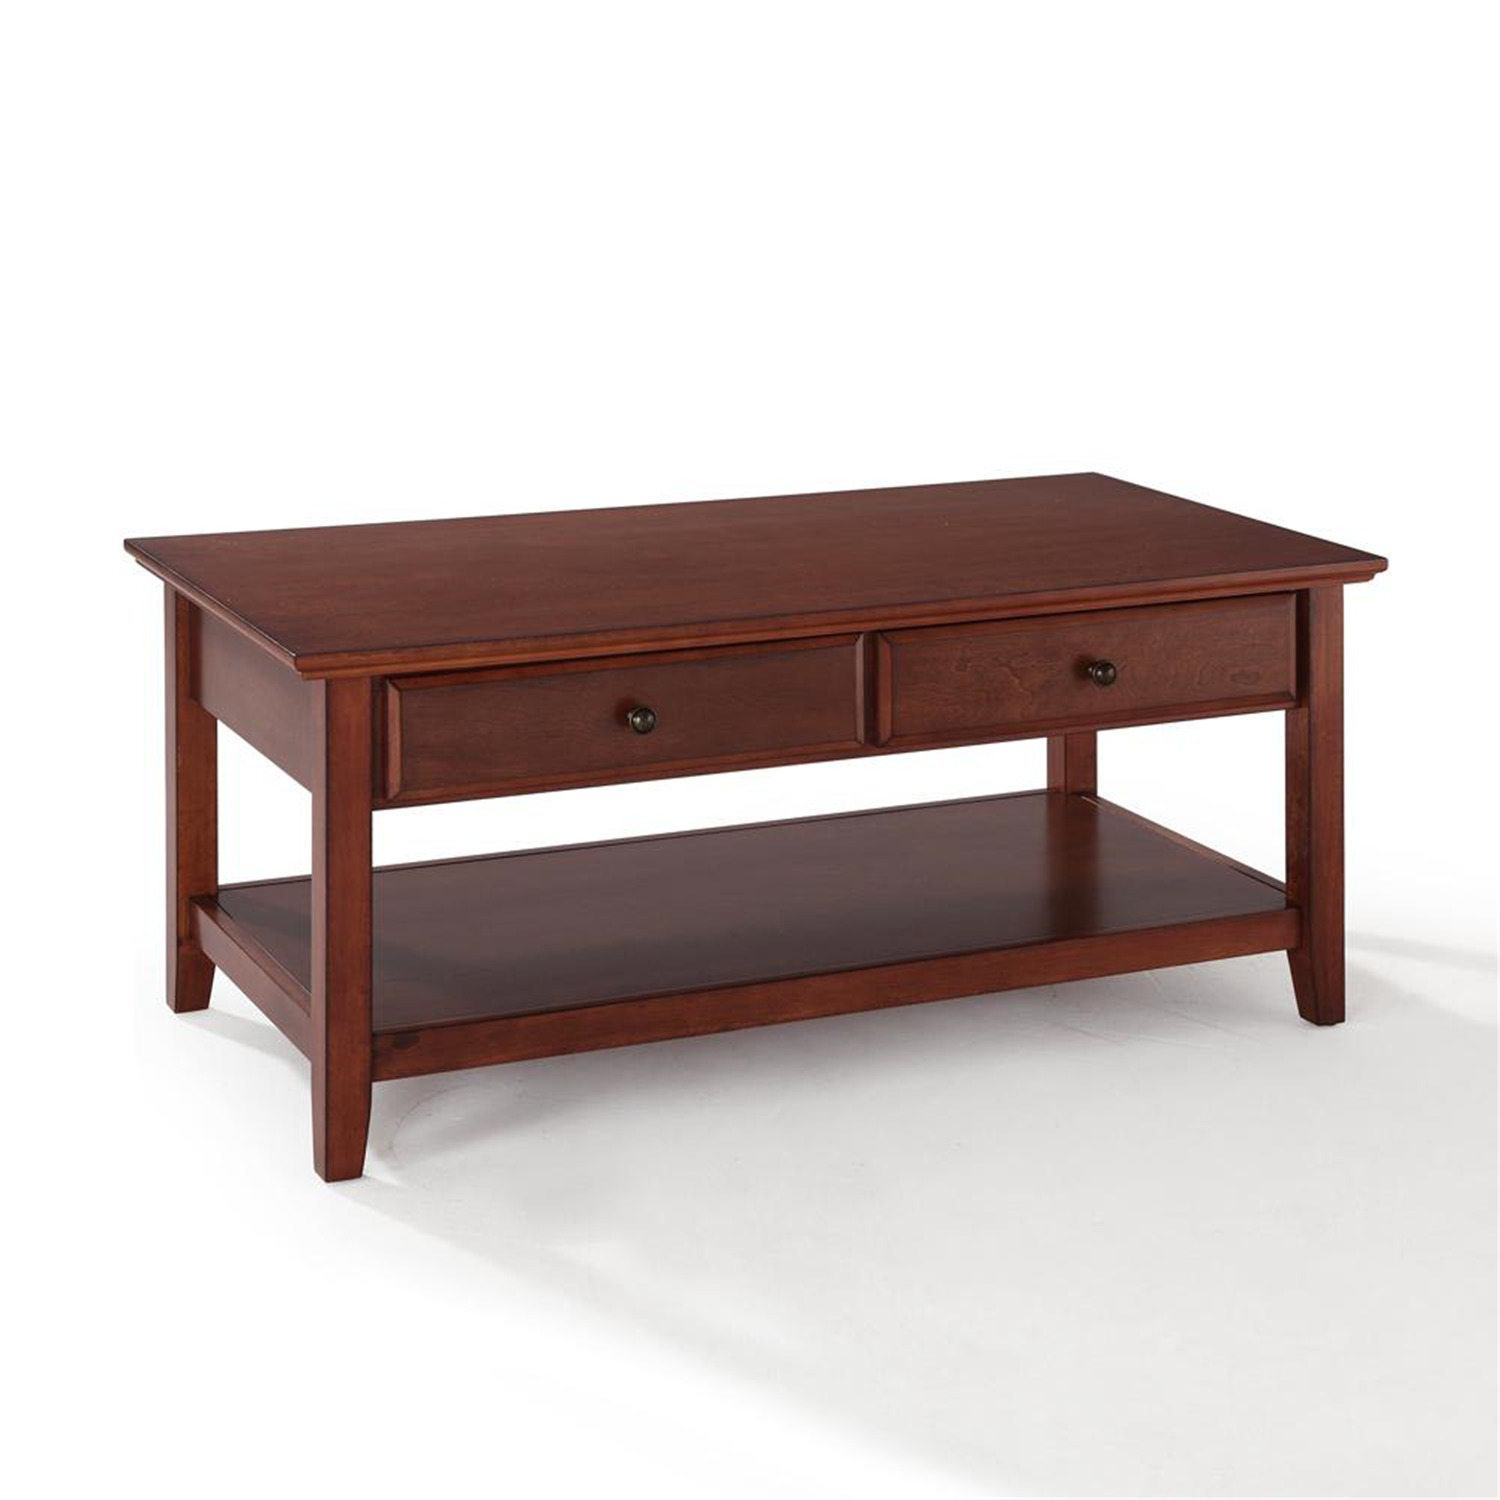 Crosley Coffee Table With Storage Drawers By Oj Commerce